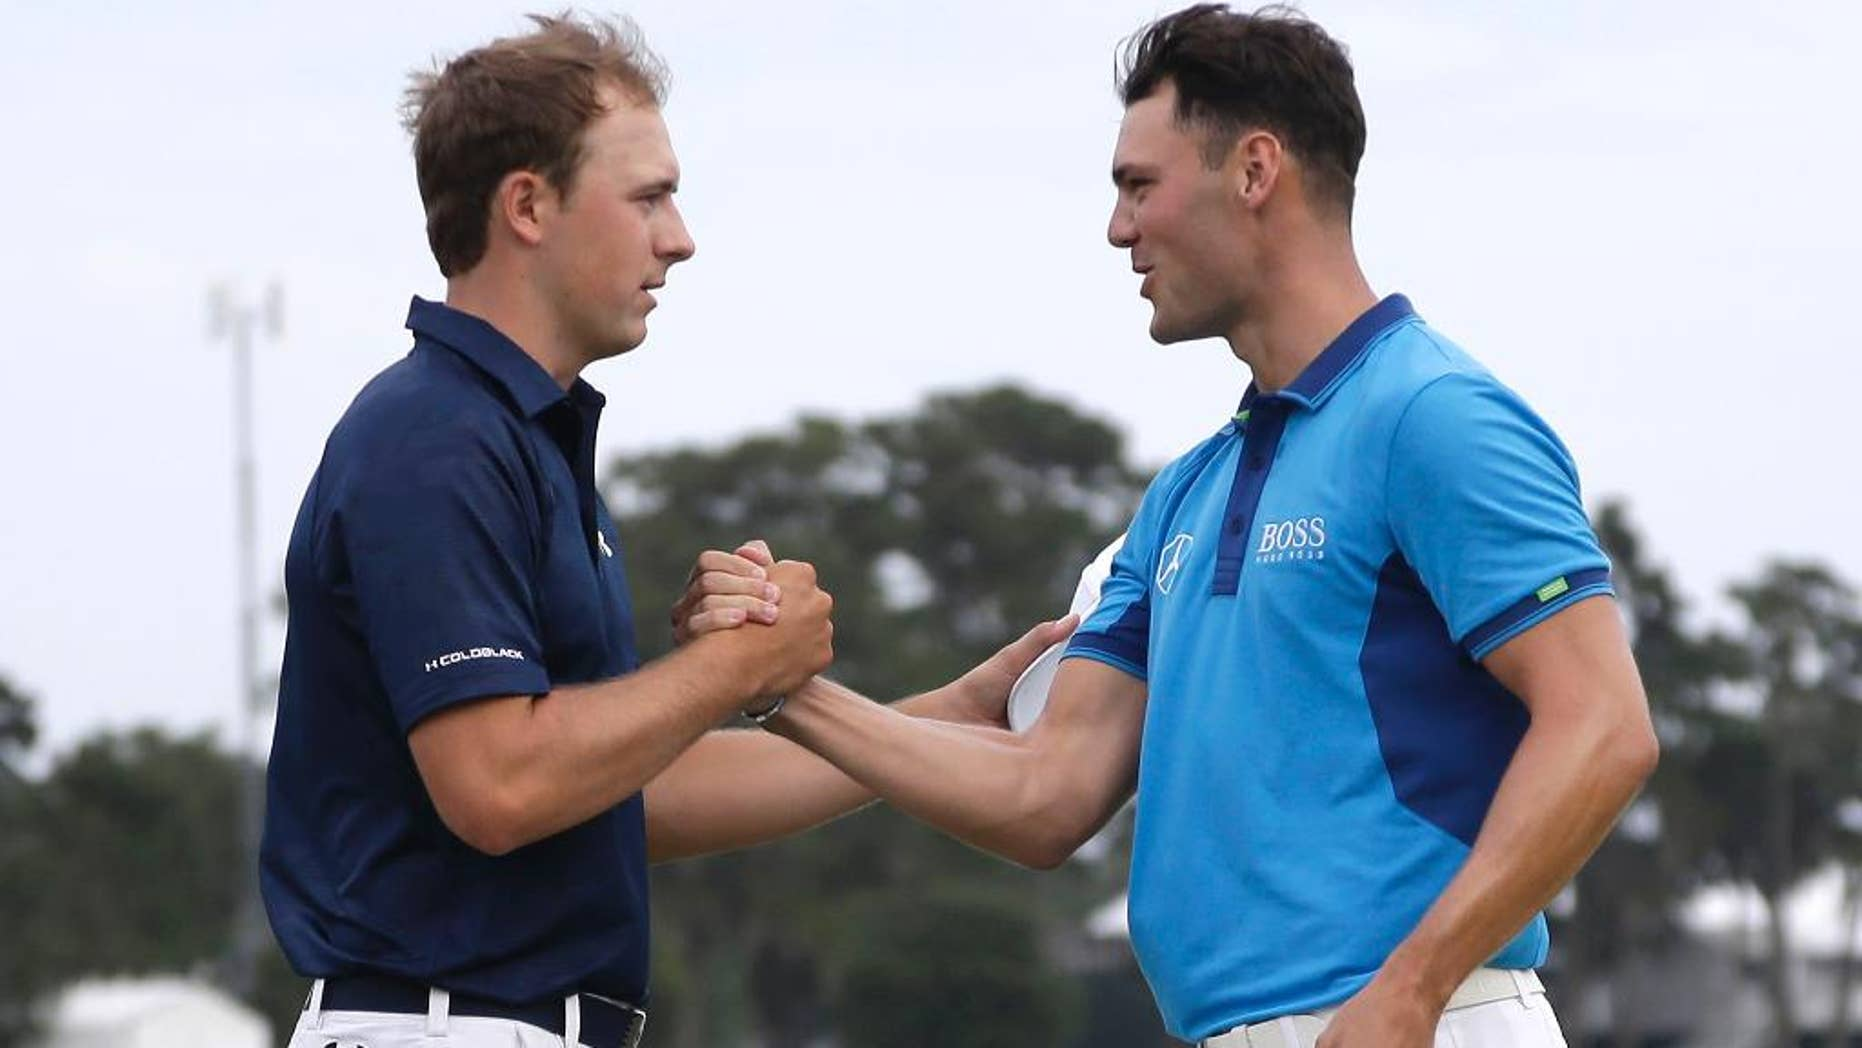 Jordan Spieth, left, and Martin Kaymer of Germany, shake hands at the end of the third round of The Players championship golf tournament at TPC Sawgrass, Saturday, May 10, 2014 in Ponte Vedra Beach, Fla. (AP Photo/Lynne Sladky)